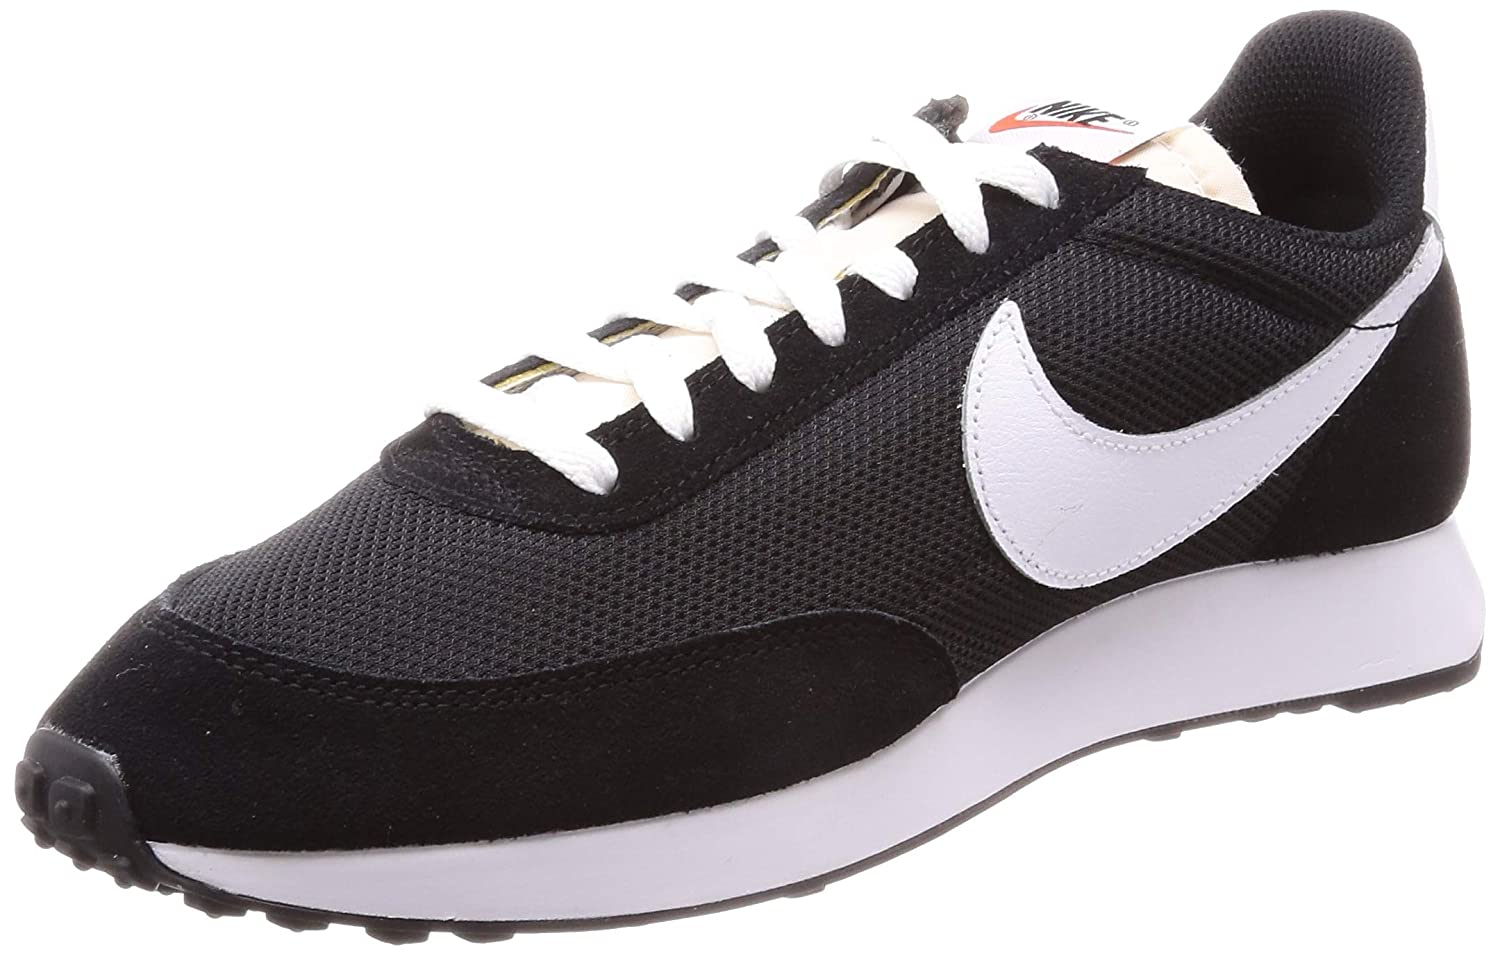 Multicolour (Black White Team orange 009) Nike Men's Air Tailwind 79 Track & Field shoes